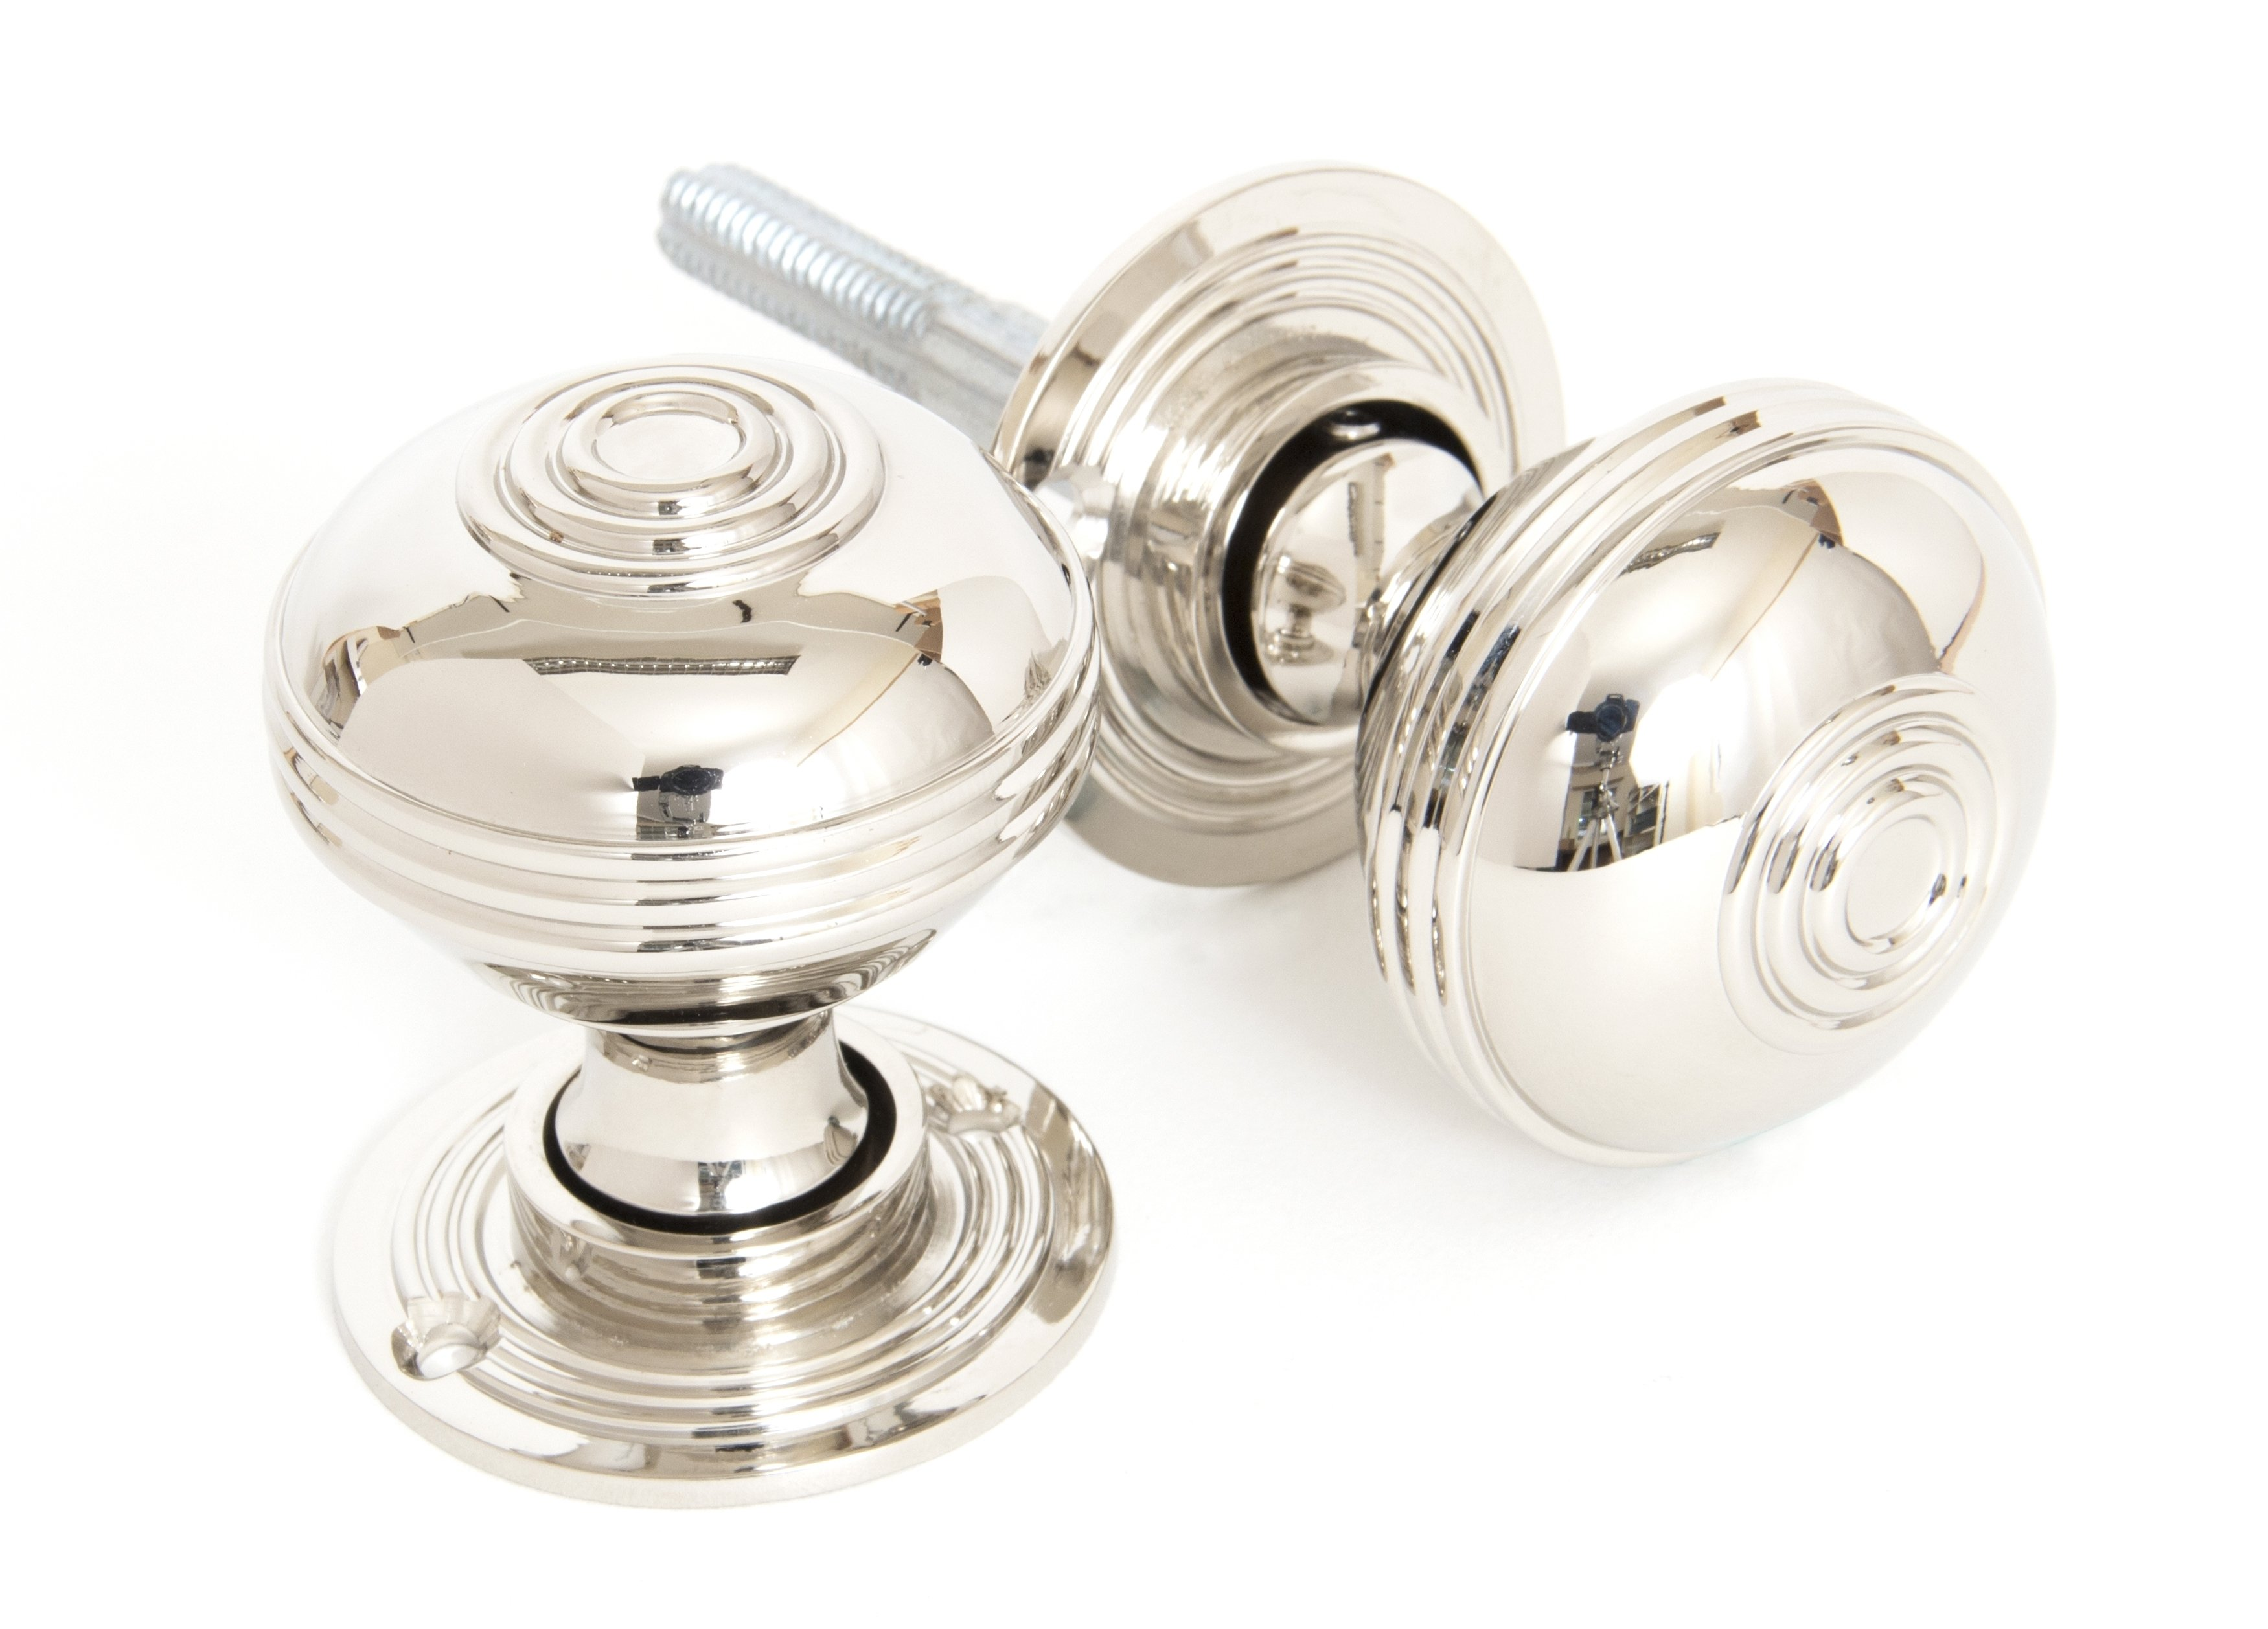 Polished Nickel Prestbury Mortice/Rim Knob Set - 50mm